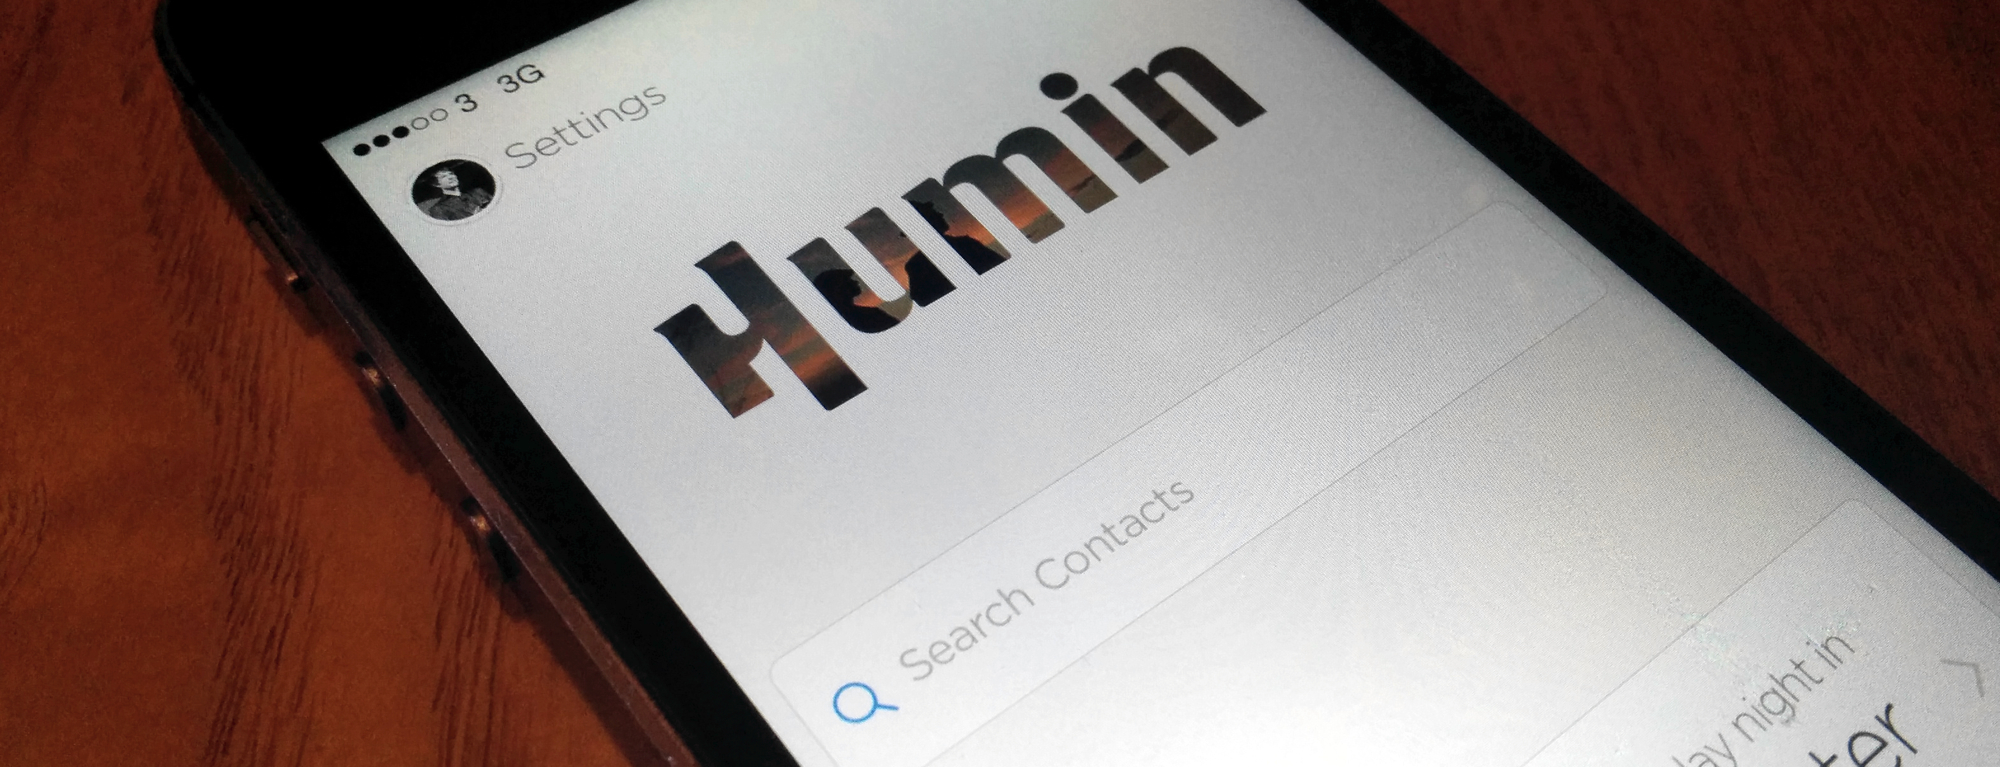 Why Humin Could Replace Your iPhone's Phone App